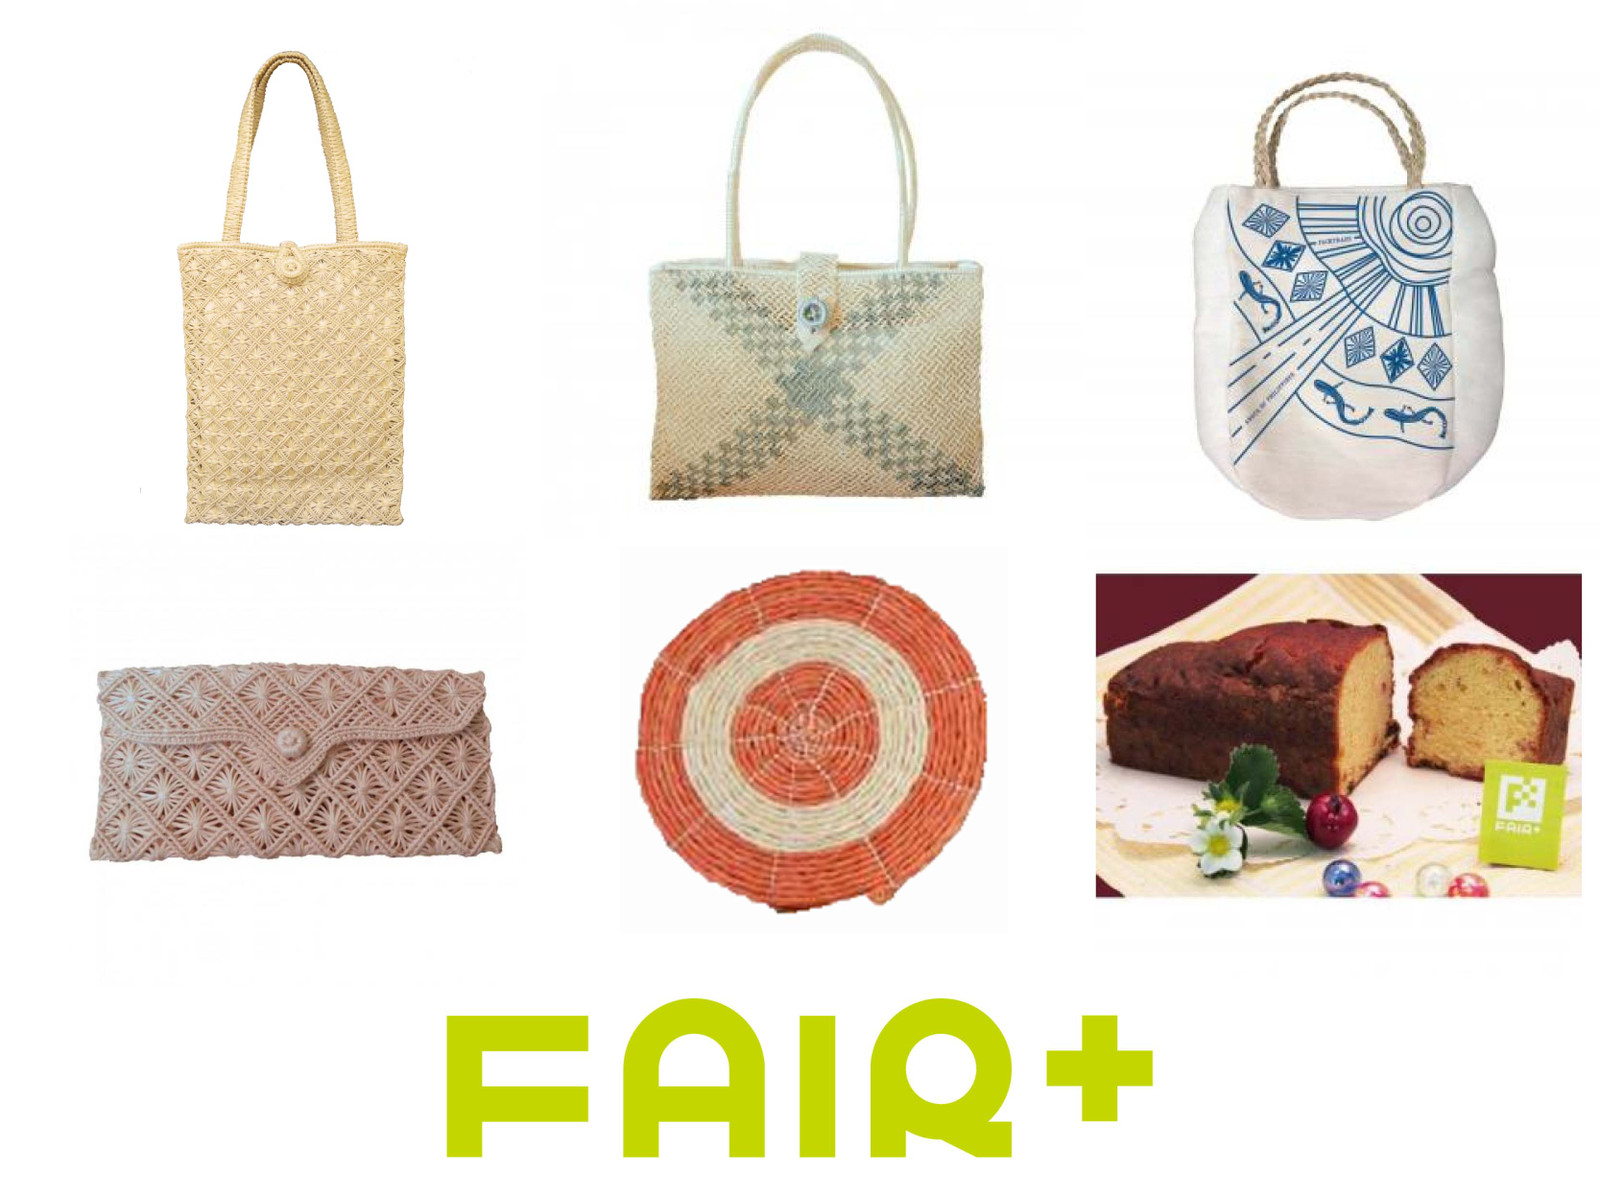 Fairplus_be_kyoto